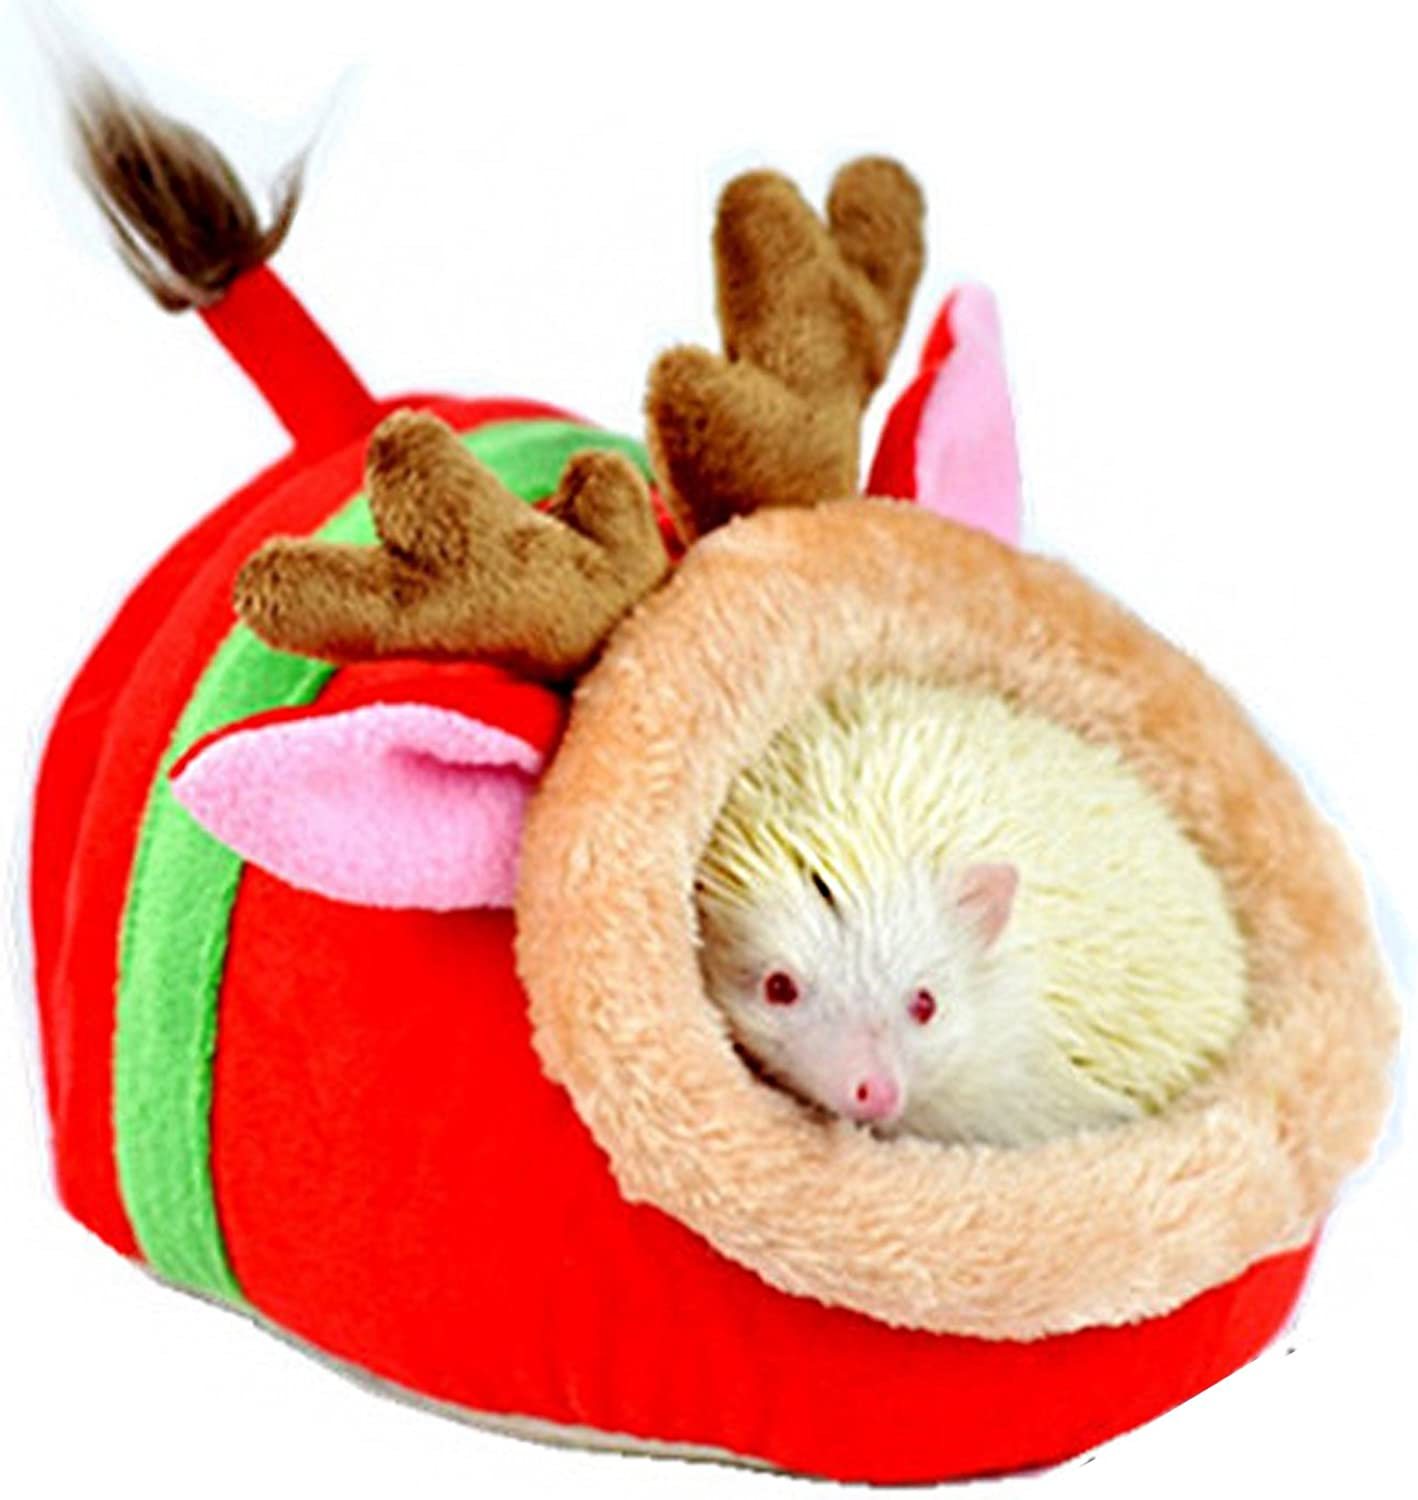 Alfie Pet  Jocelyn Sleeping Cave Bed for Small Animals Like Dwarf Hamster and Mouse  Pattern  Reindeer